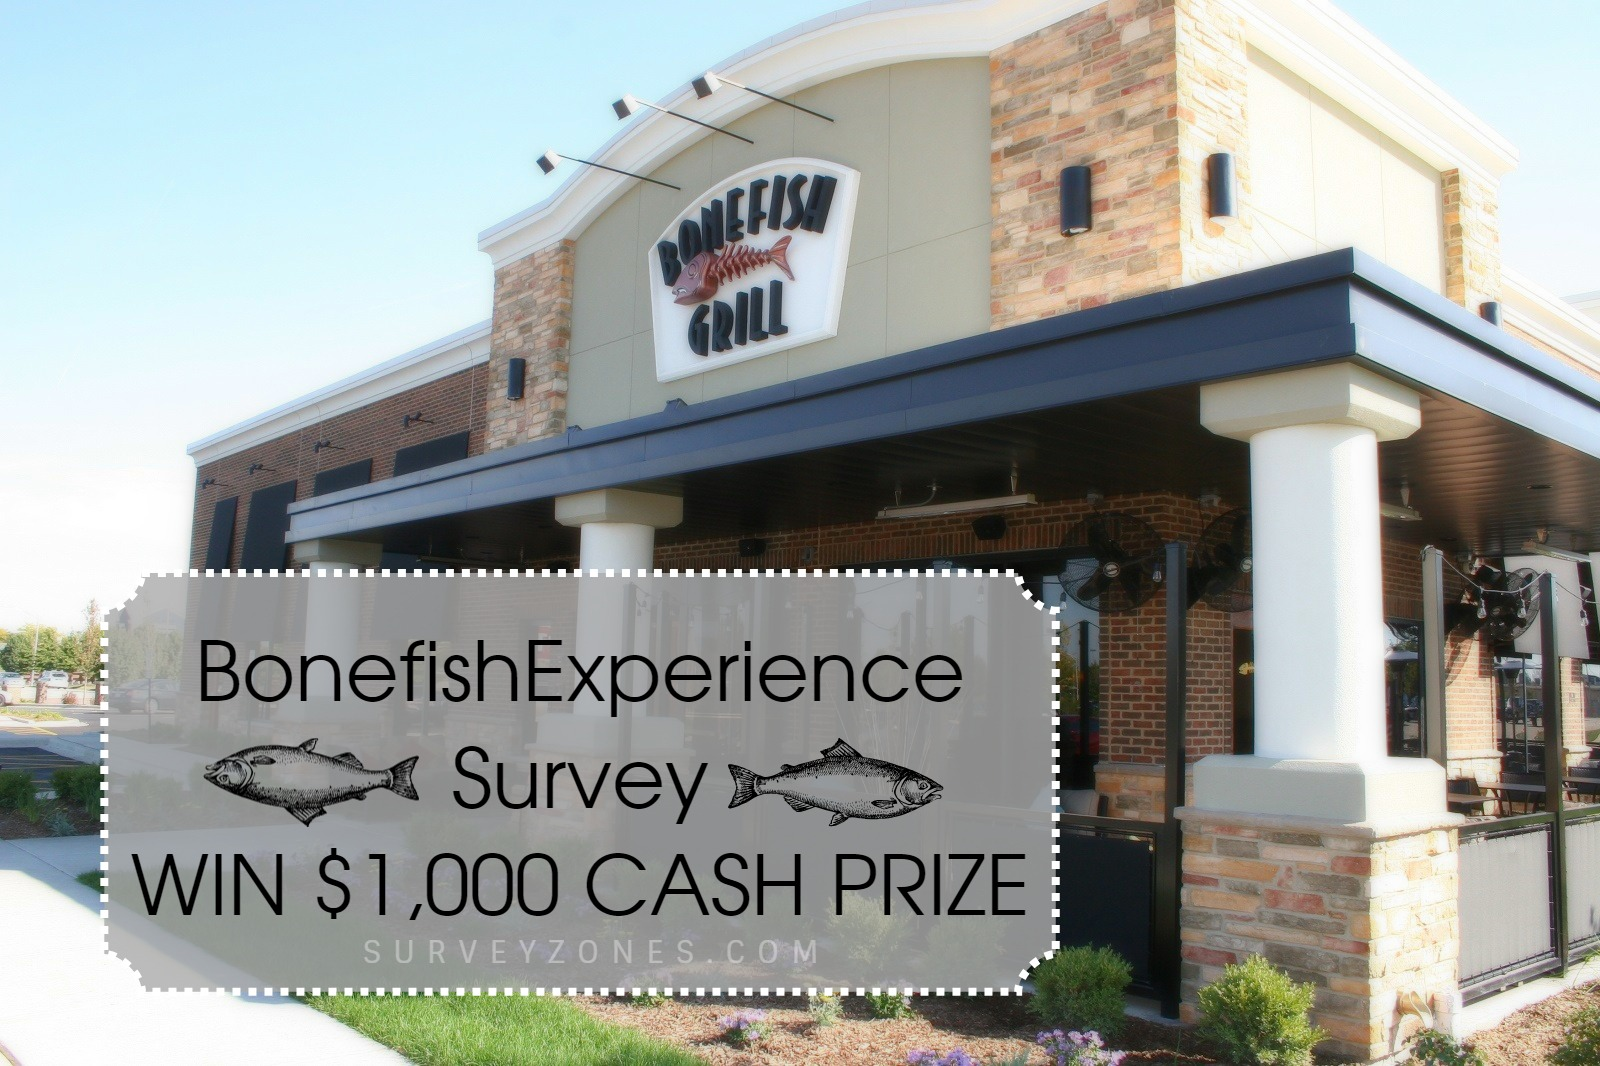 Bonefish Survey Sweepstakes